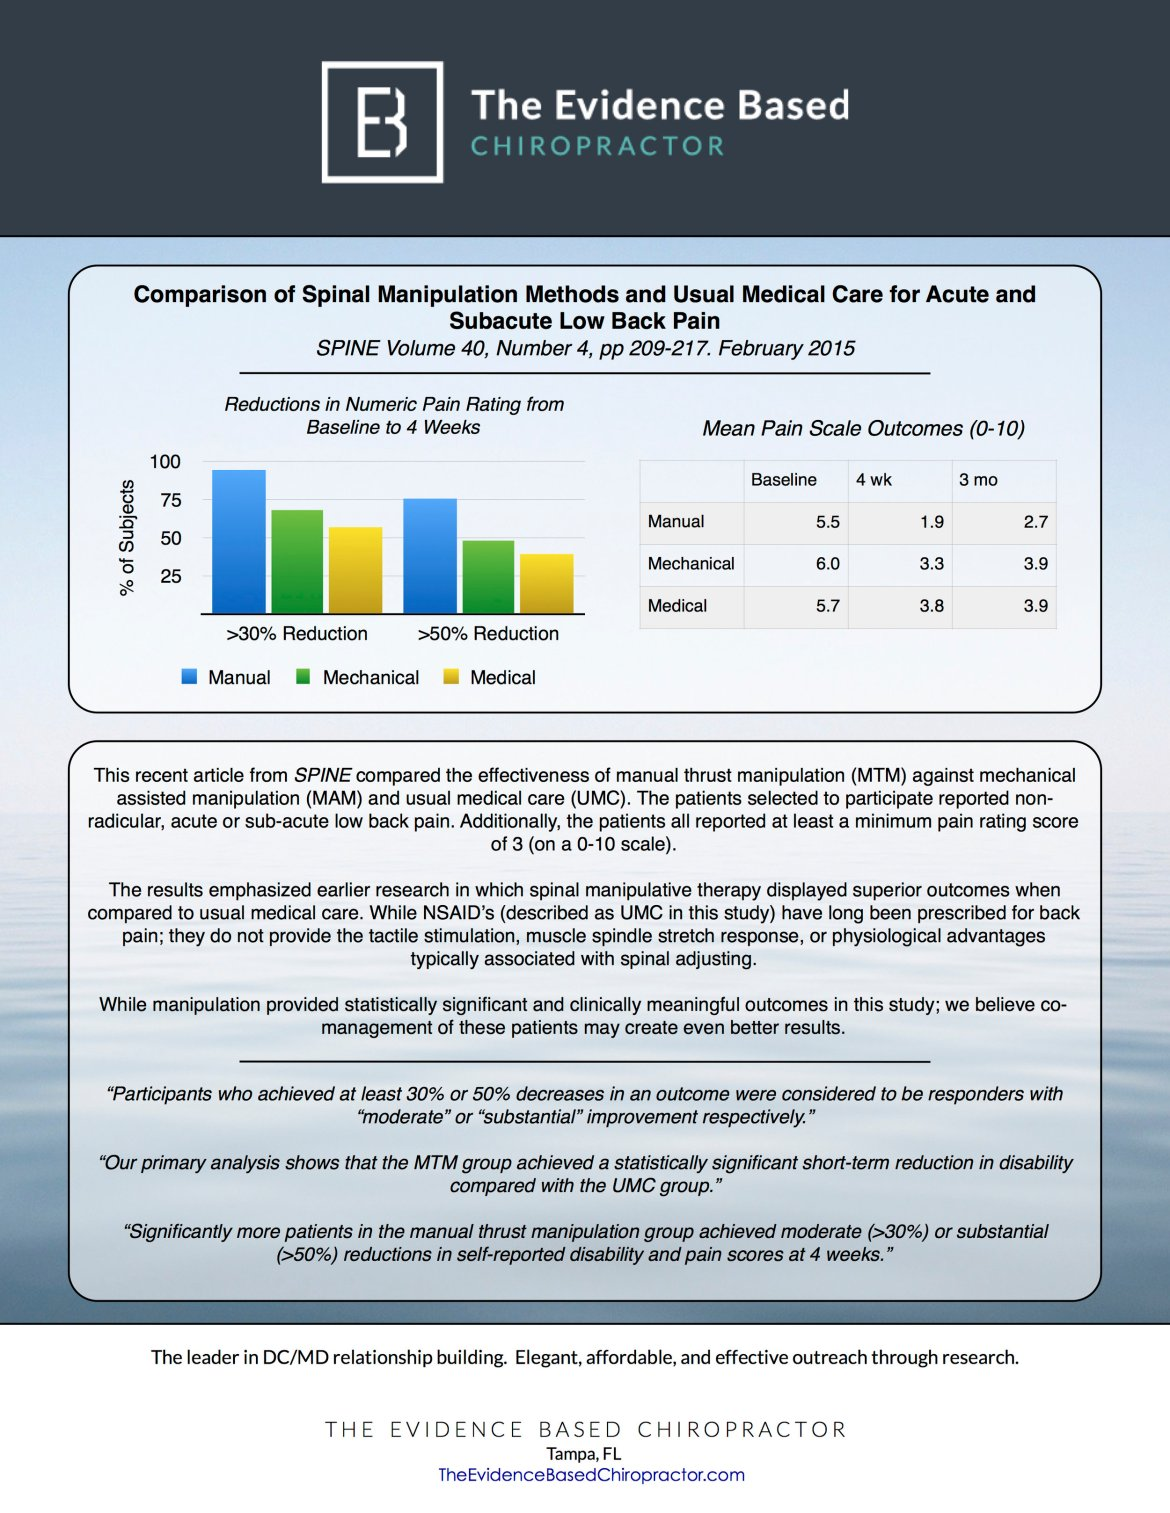 Sample Research from The Evidence Based Chiropractor